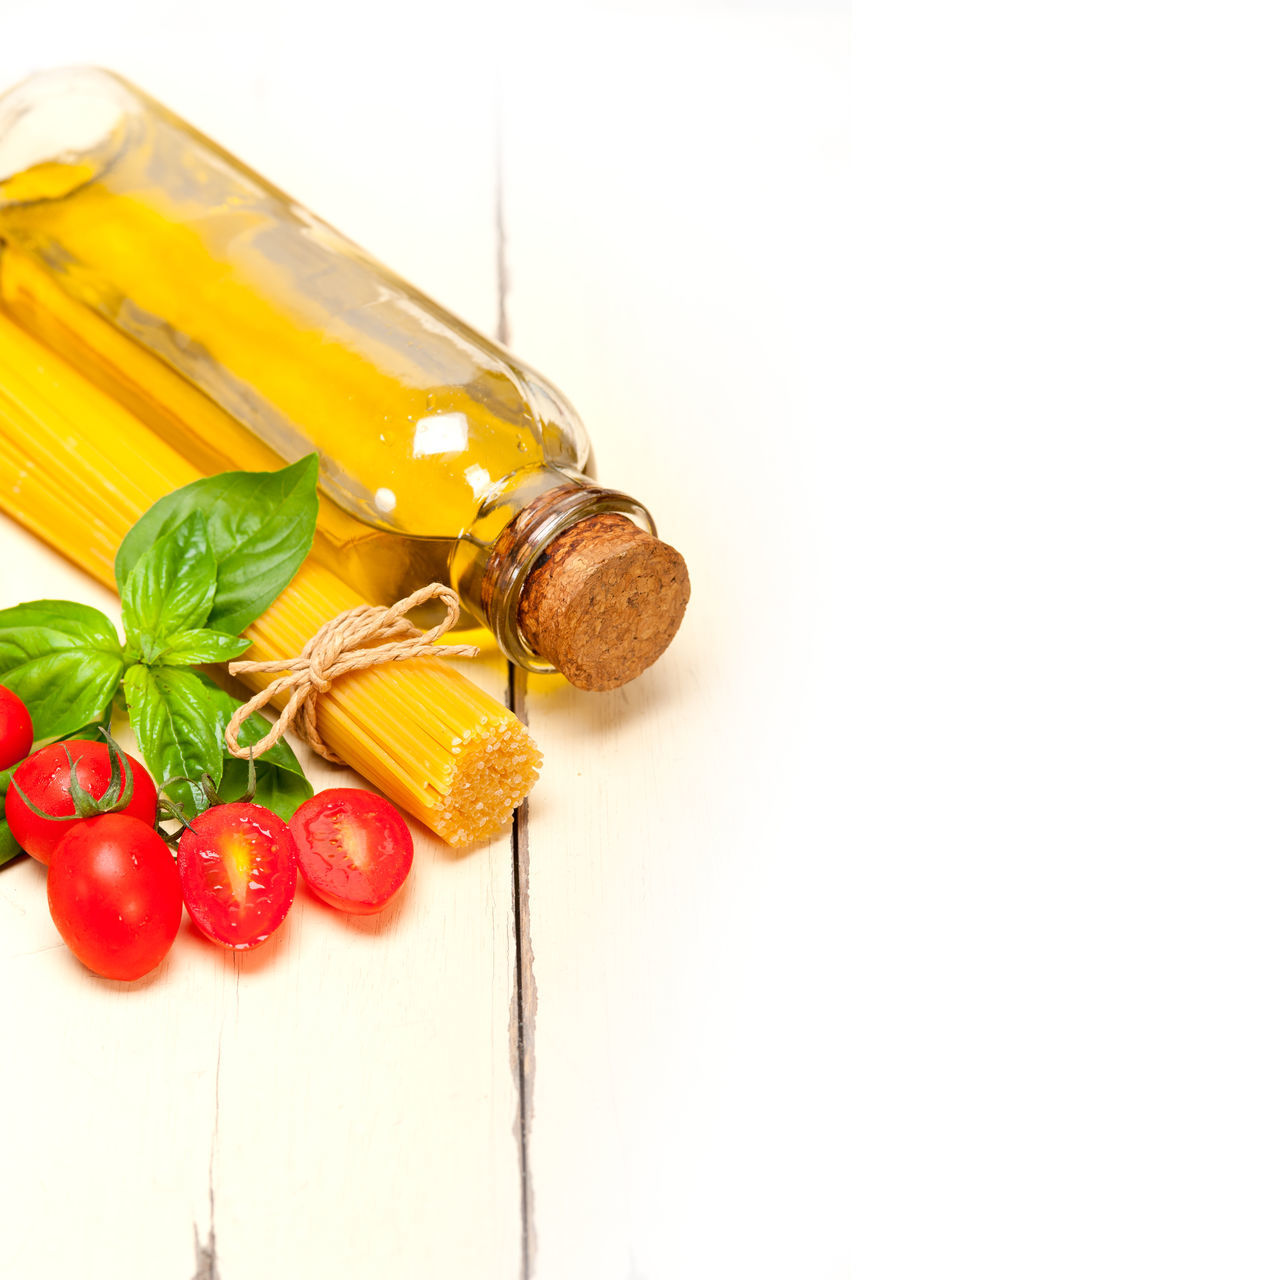 Close-Up Of Tied Spaghetti With Tomatoes And Bottle On Table